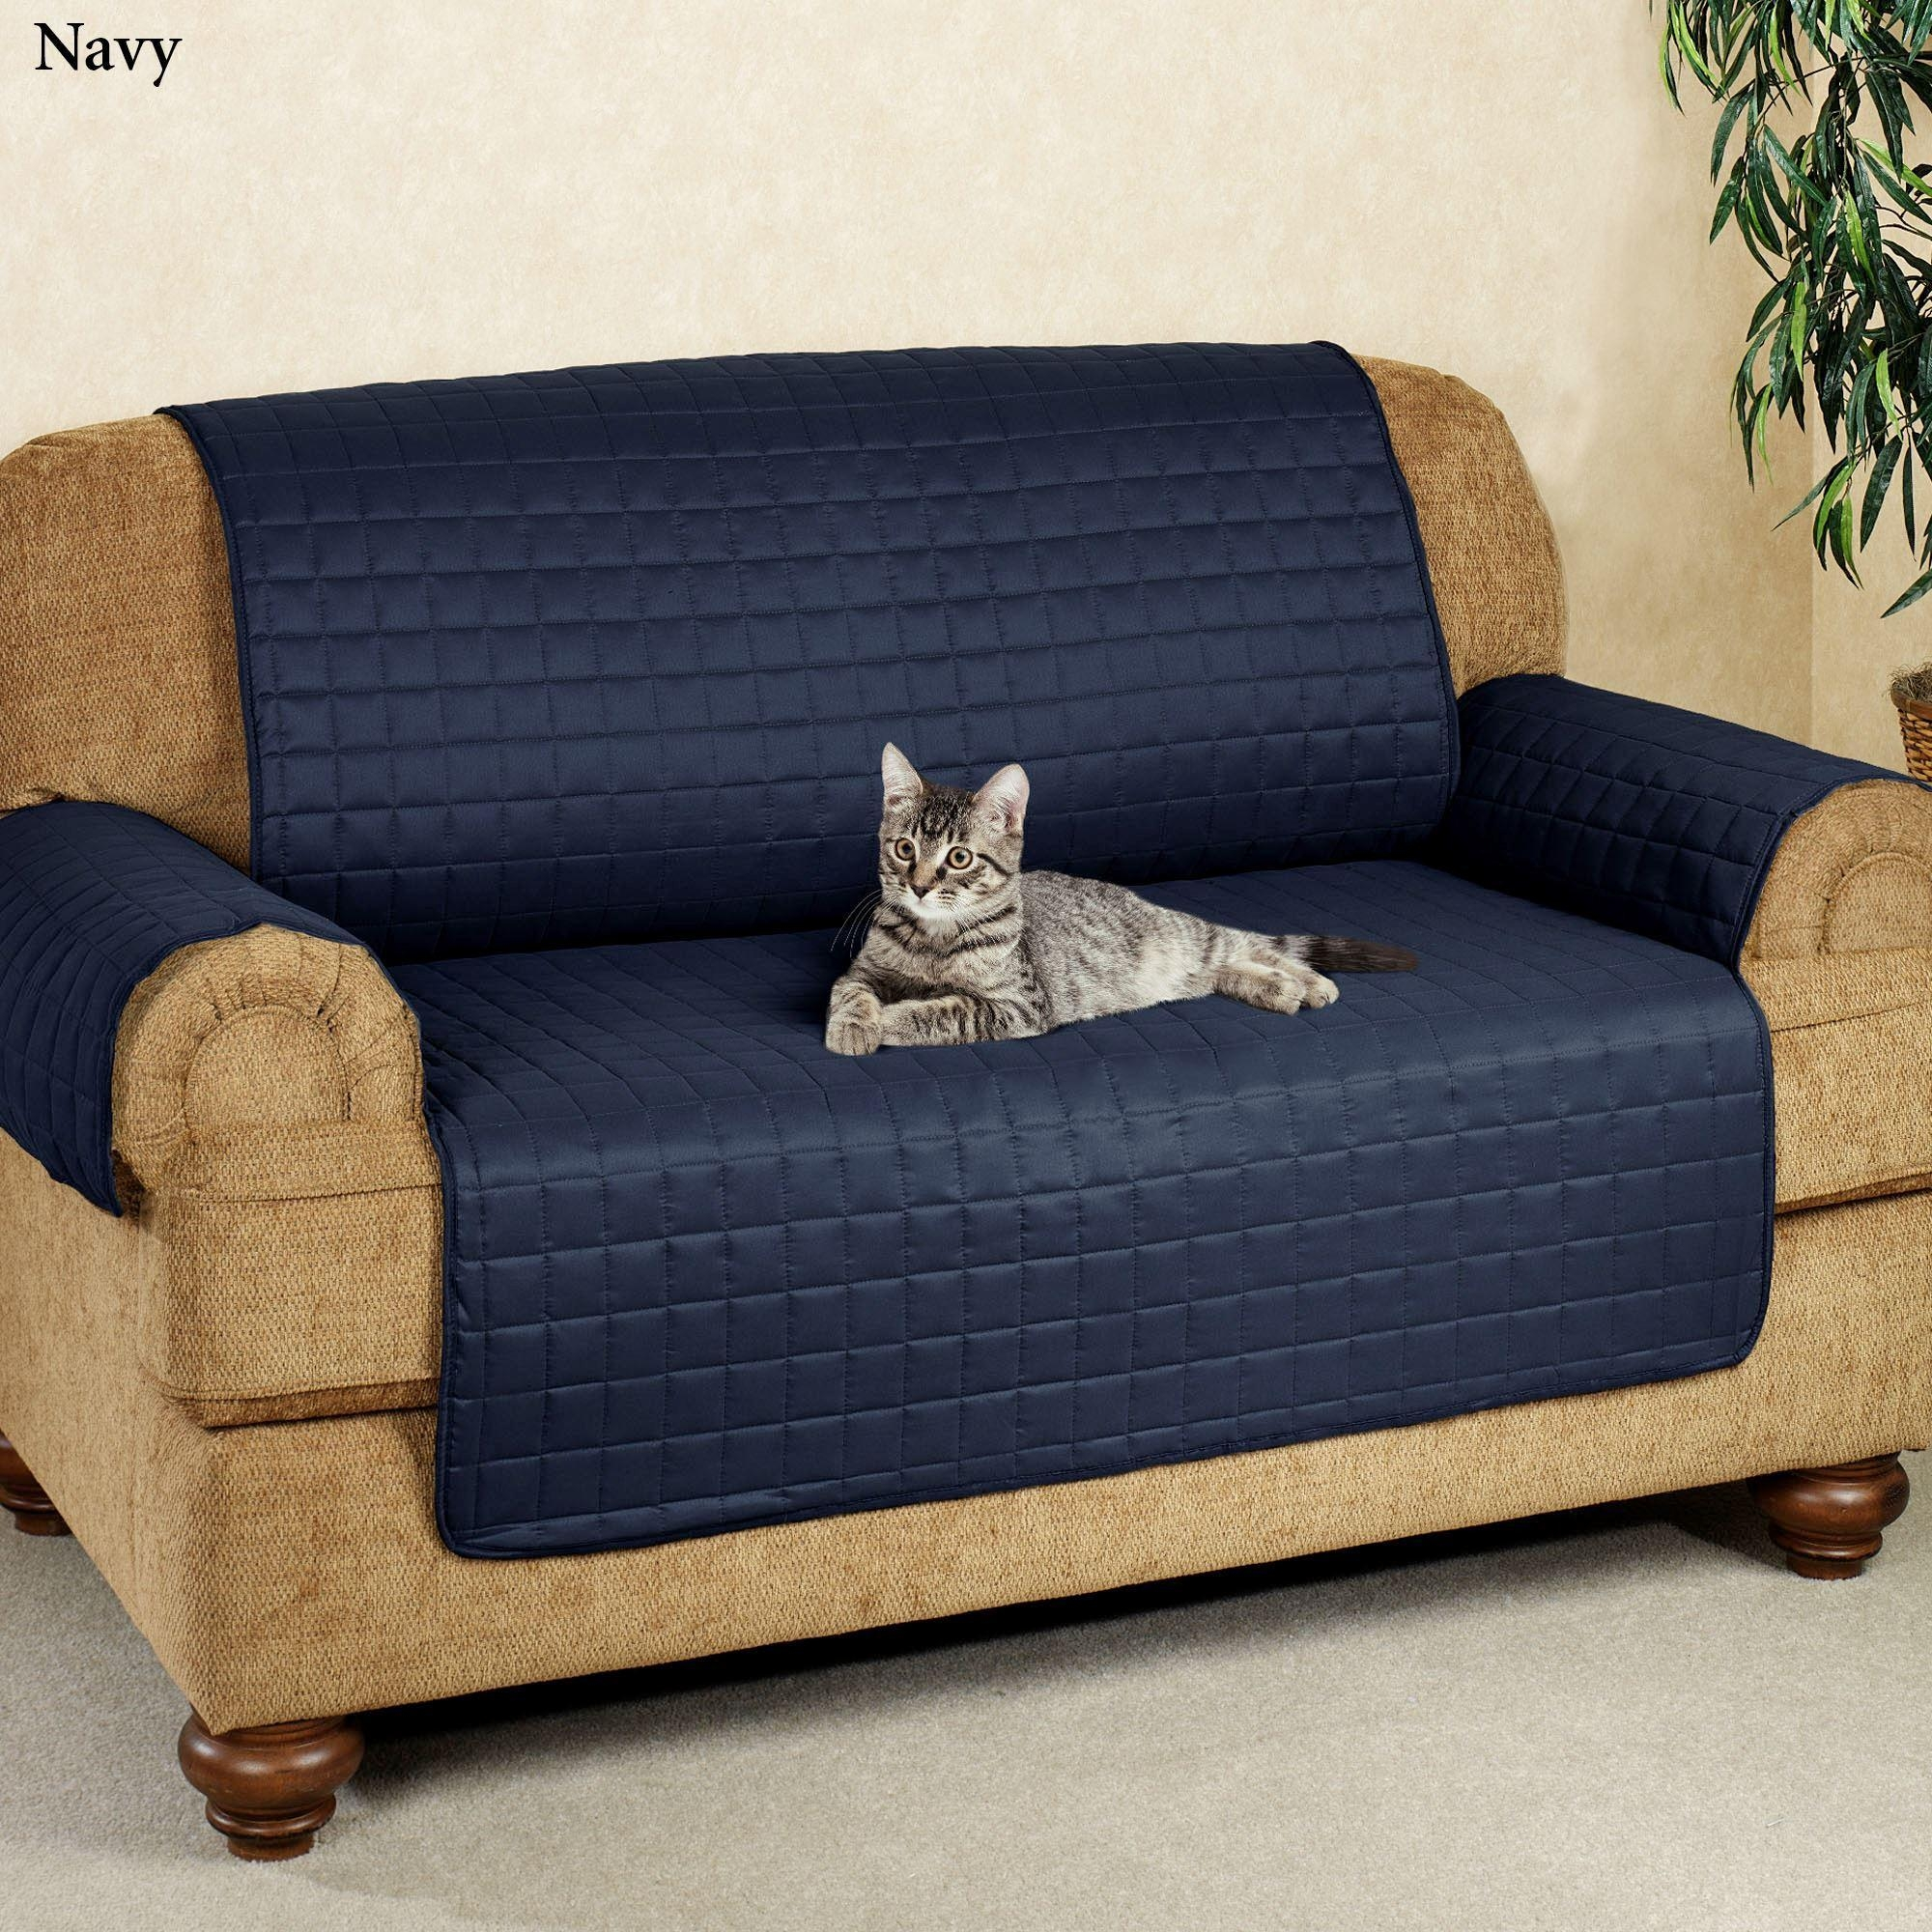 Microfiber Pet Furniture Covers With Tuck In Flaps Regarding Blue Slipcover Sofas (Image 12 of 20)